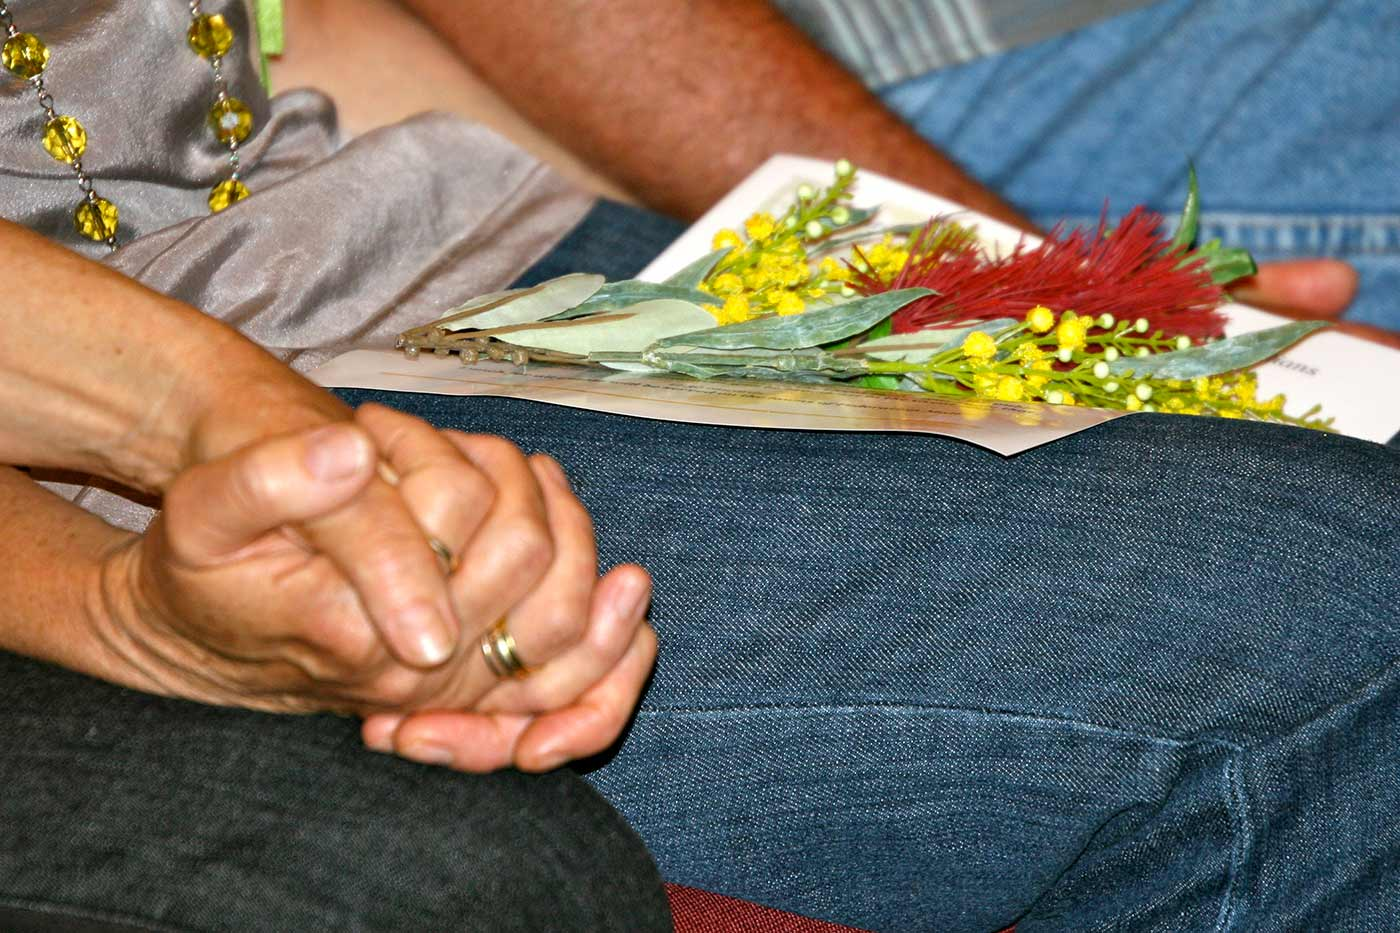 Colour photograph showing a close-up view of clasped hands and a spray of wattle and bottlebrush flowers resting on a person's lap. - click to view larger image